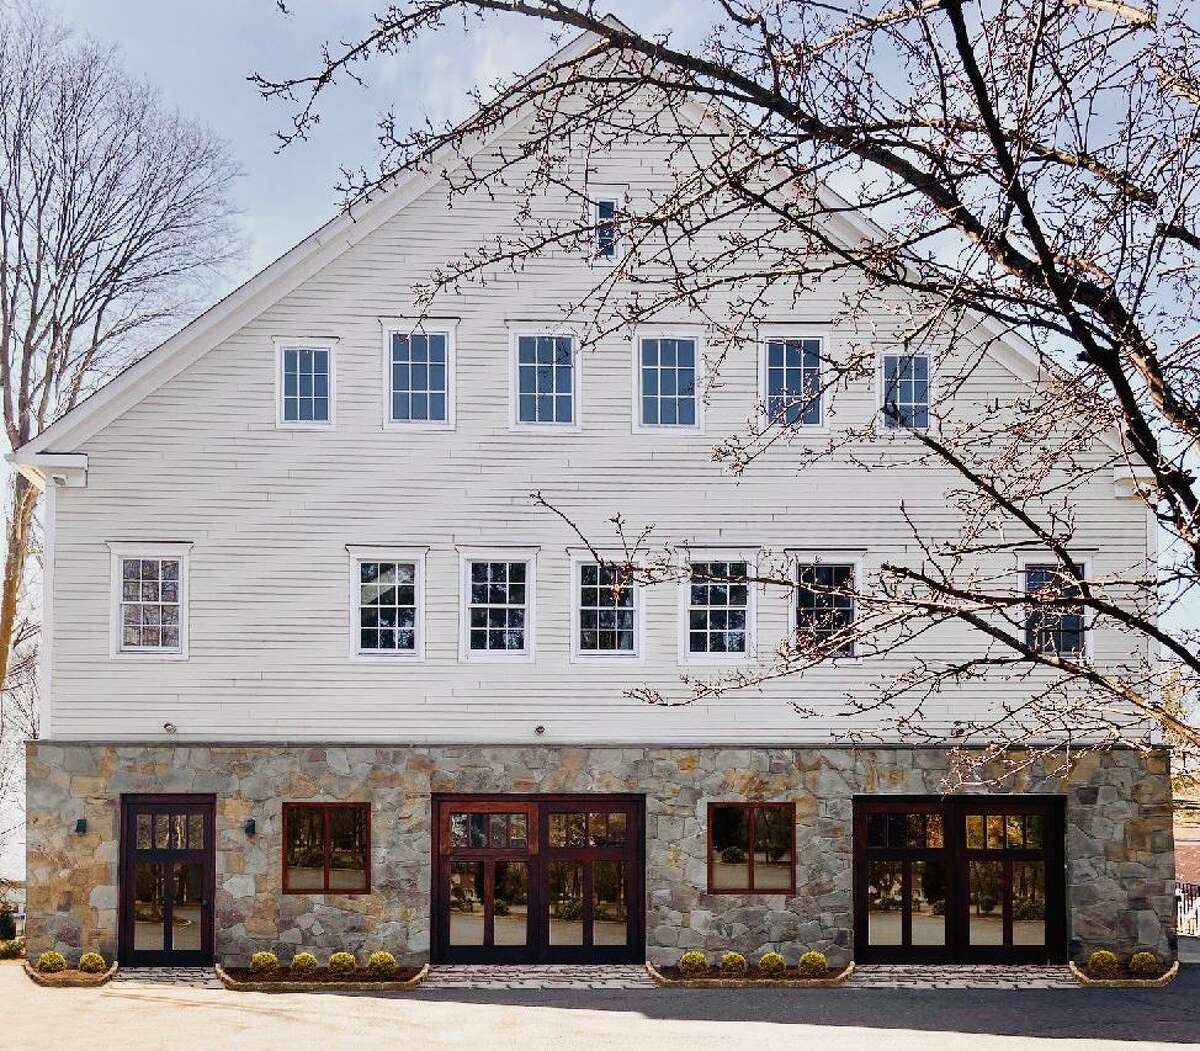 The rear view of Art House, which sits at the intersection of Danbury Road and Hollyhock Road, is being proposed as a conversion from art studio and office space to apartments, several of which would be offered as affordable. Dec. 2020, wilton, ct